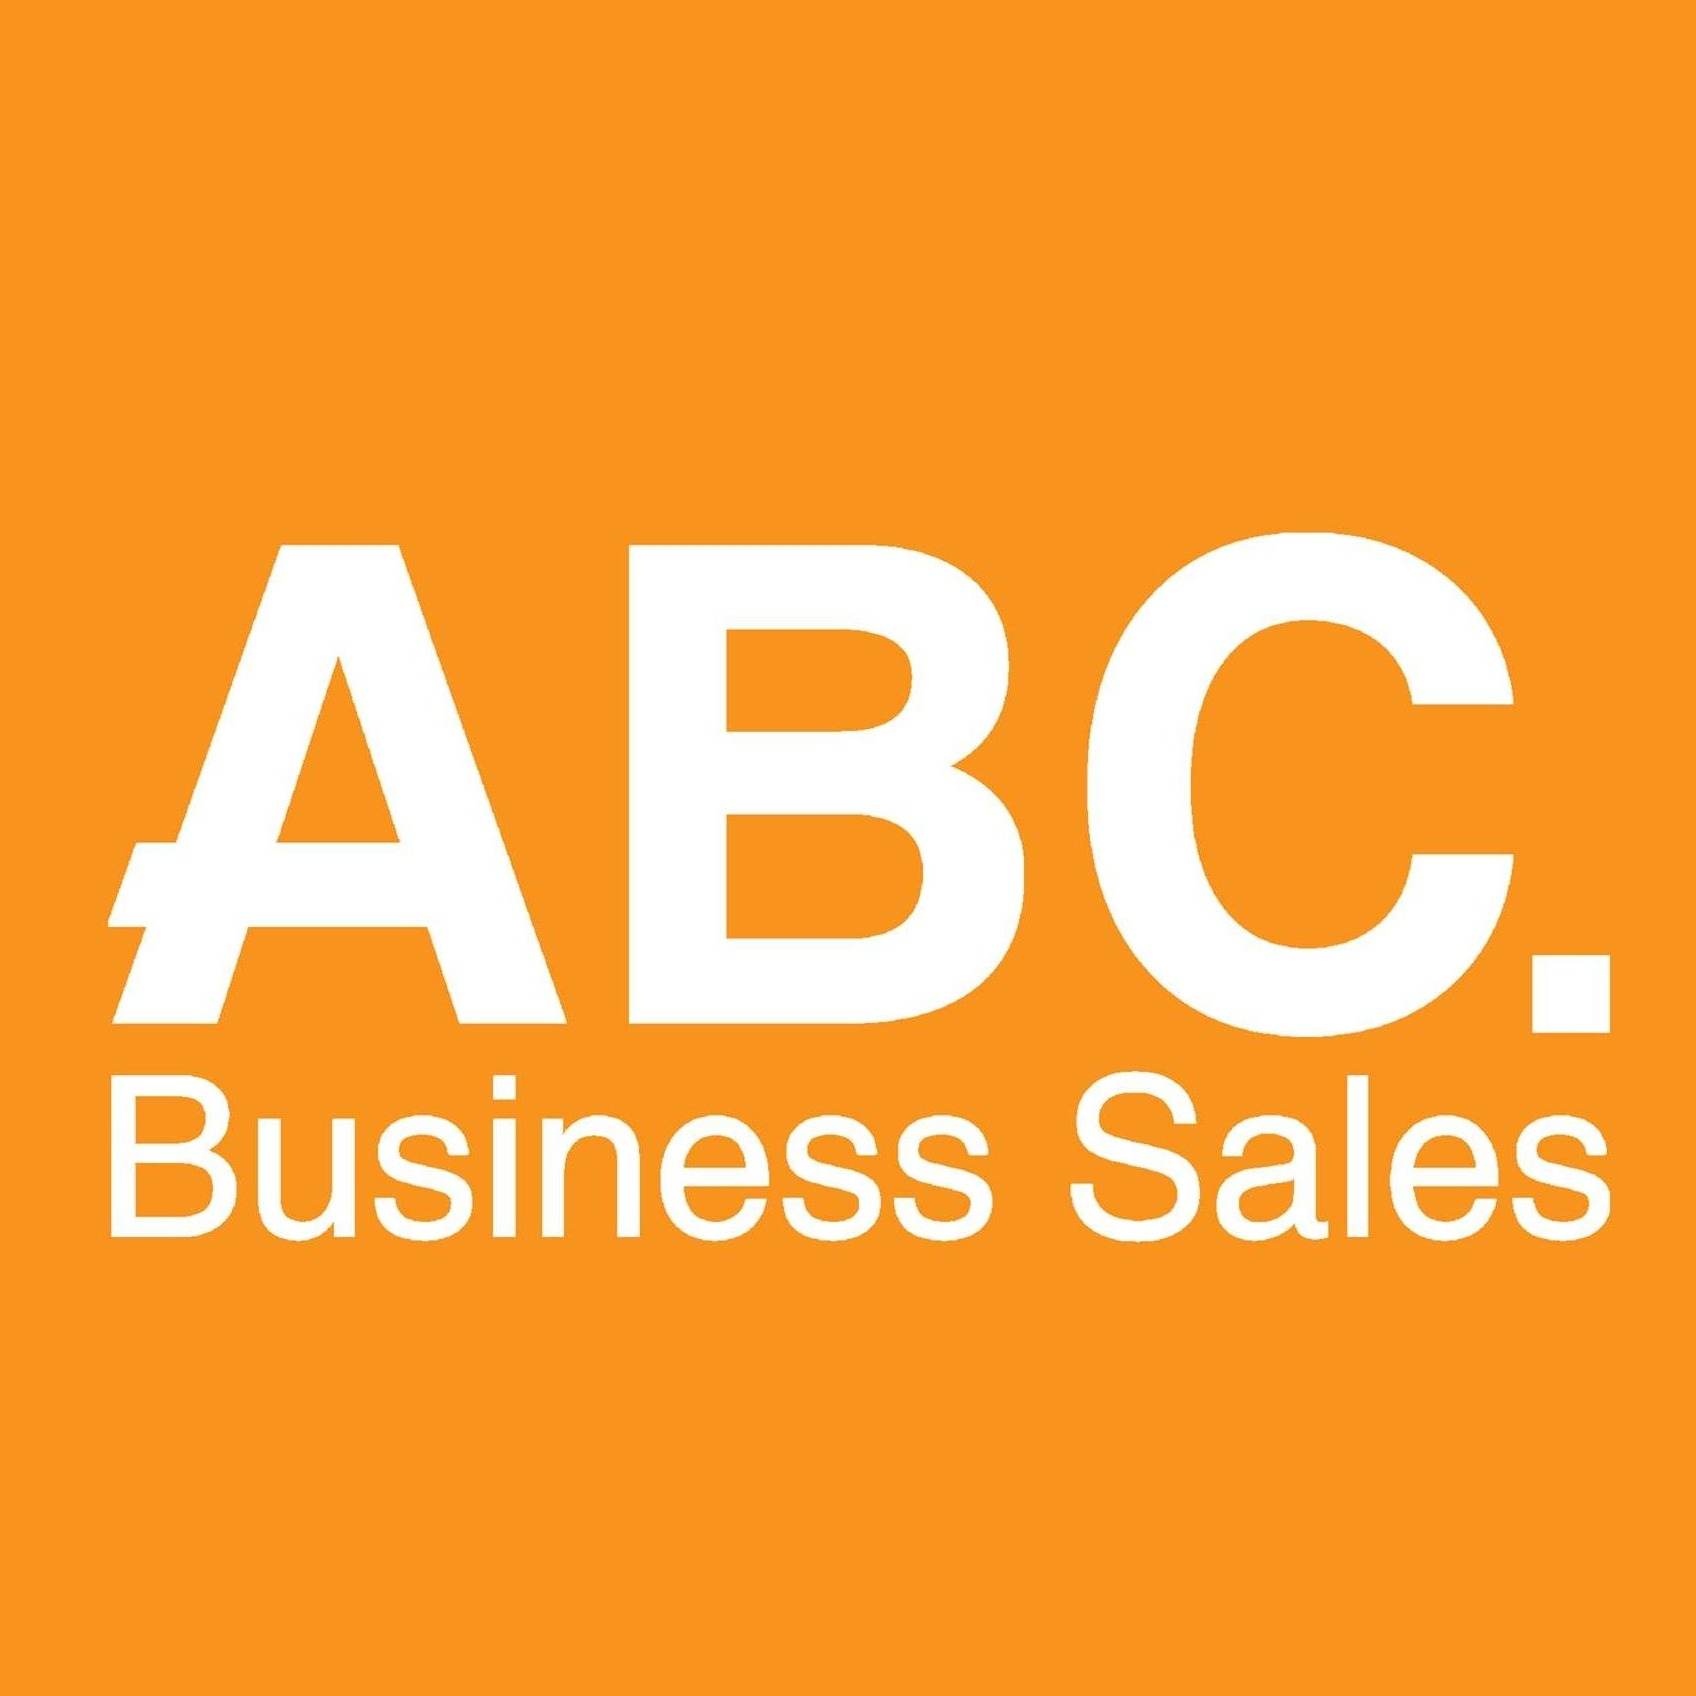 ABC Business Sales